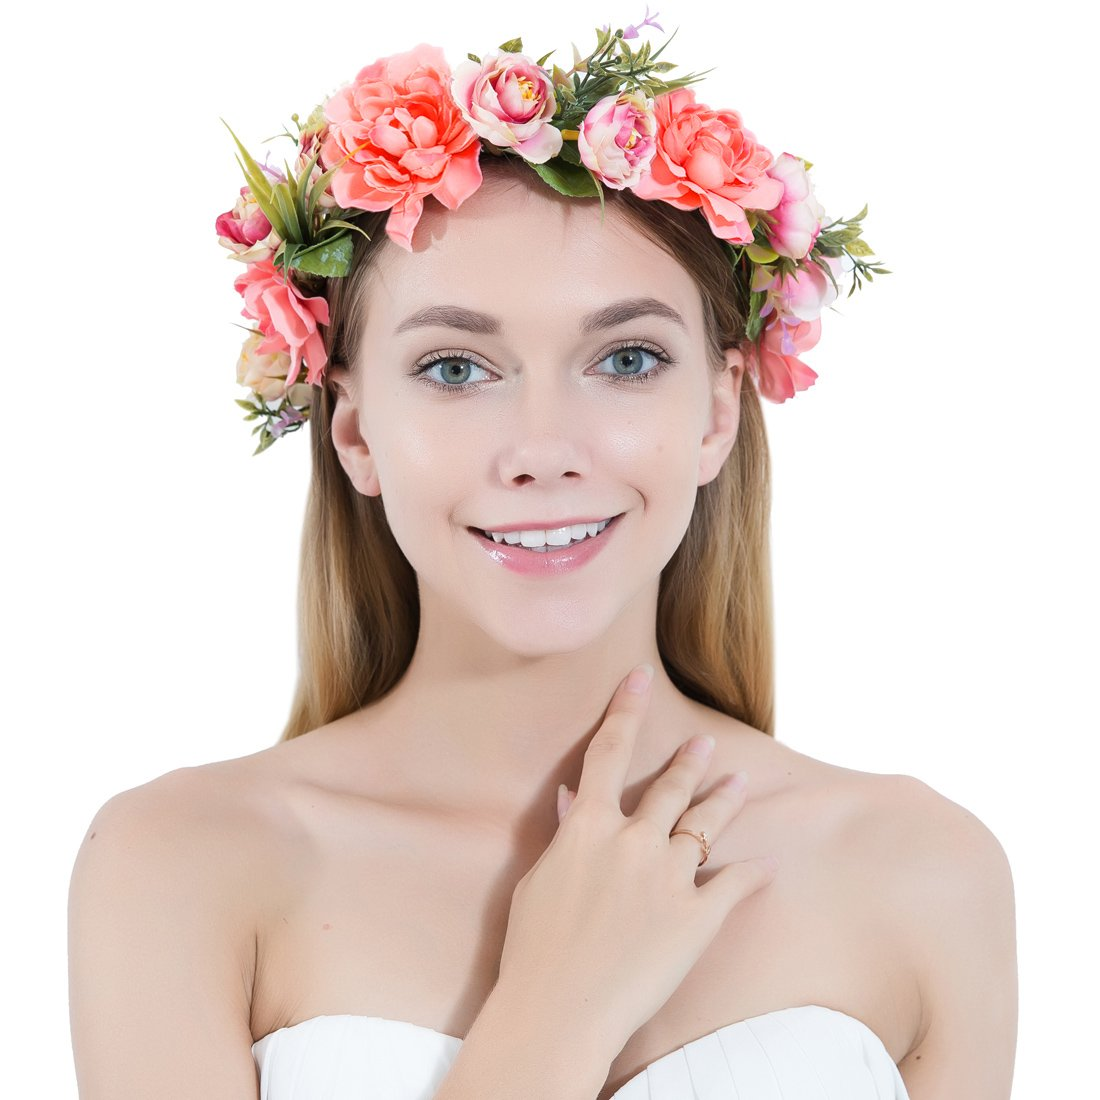 Flower Crown Wreath Headbands Women Girls Handmade Boho Floral Garland Wedding Birthday Party Photos Festival (Red and Pink)